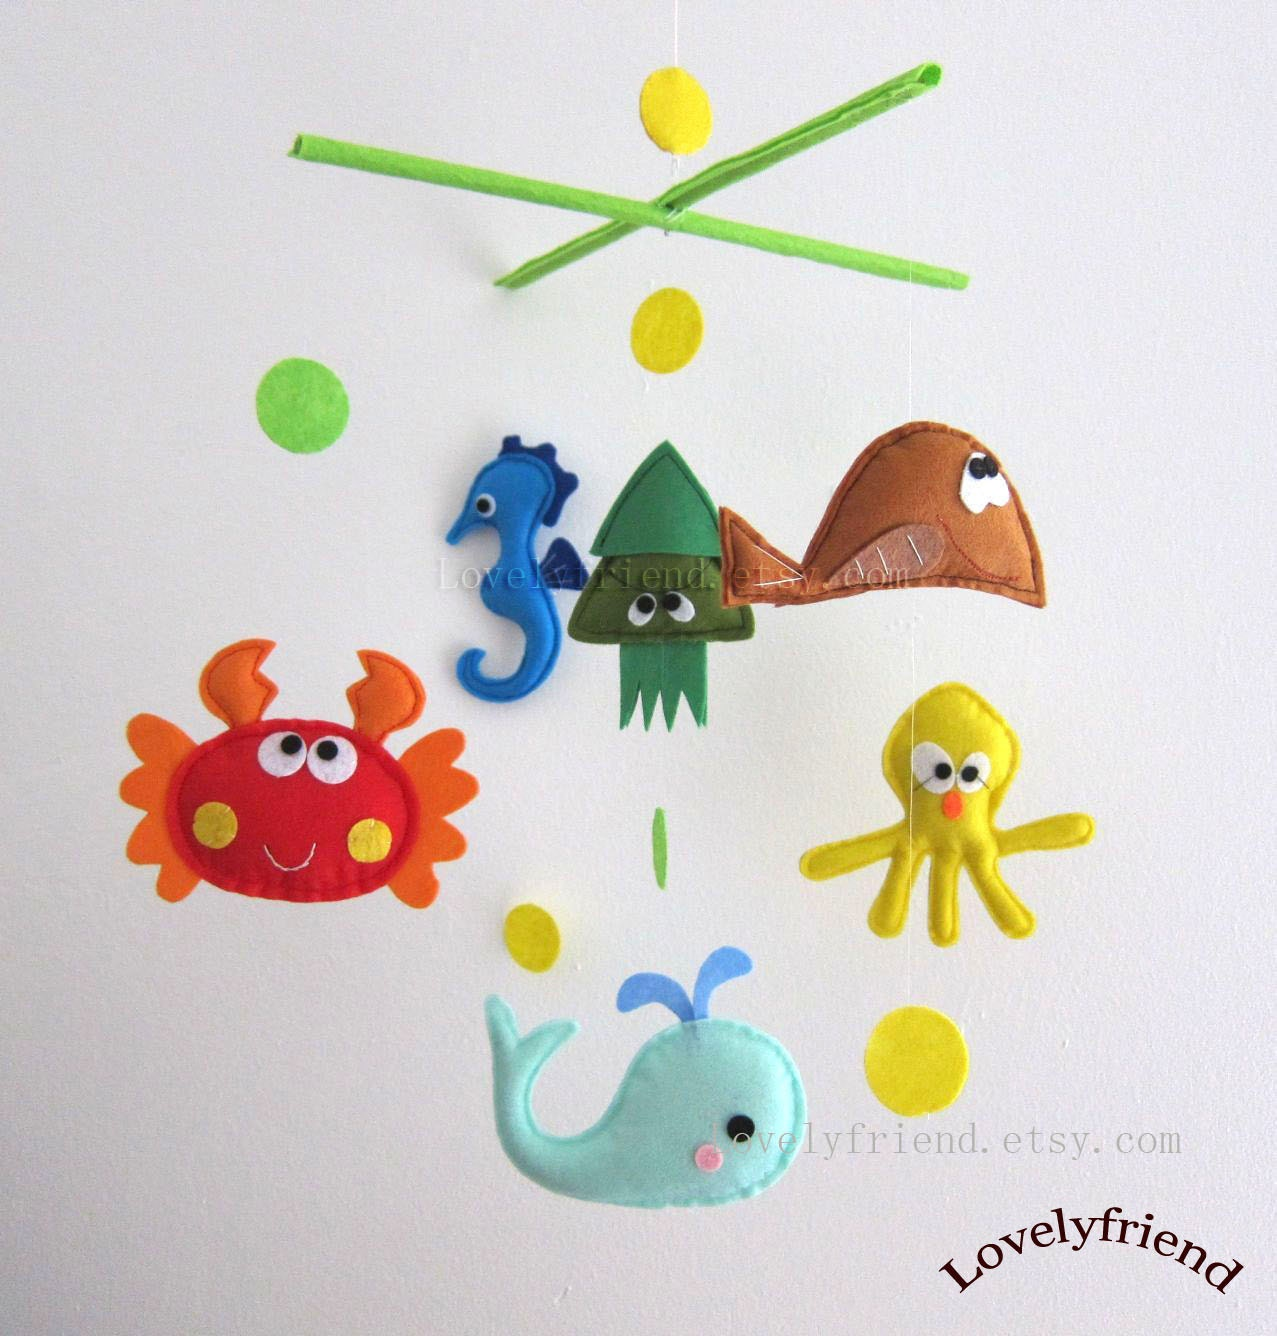 Baby Mobile octopus and squid Crib Mobile by lovelyfriend